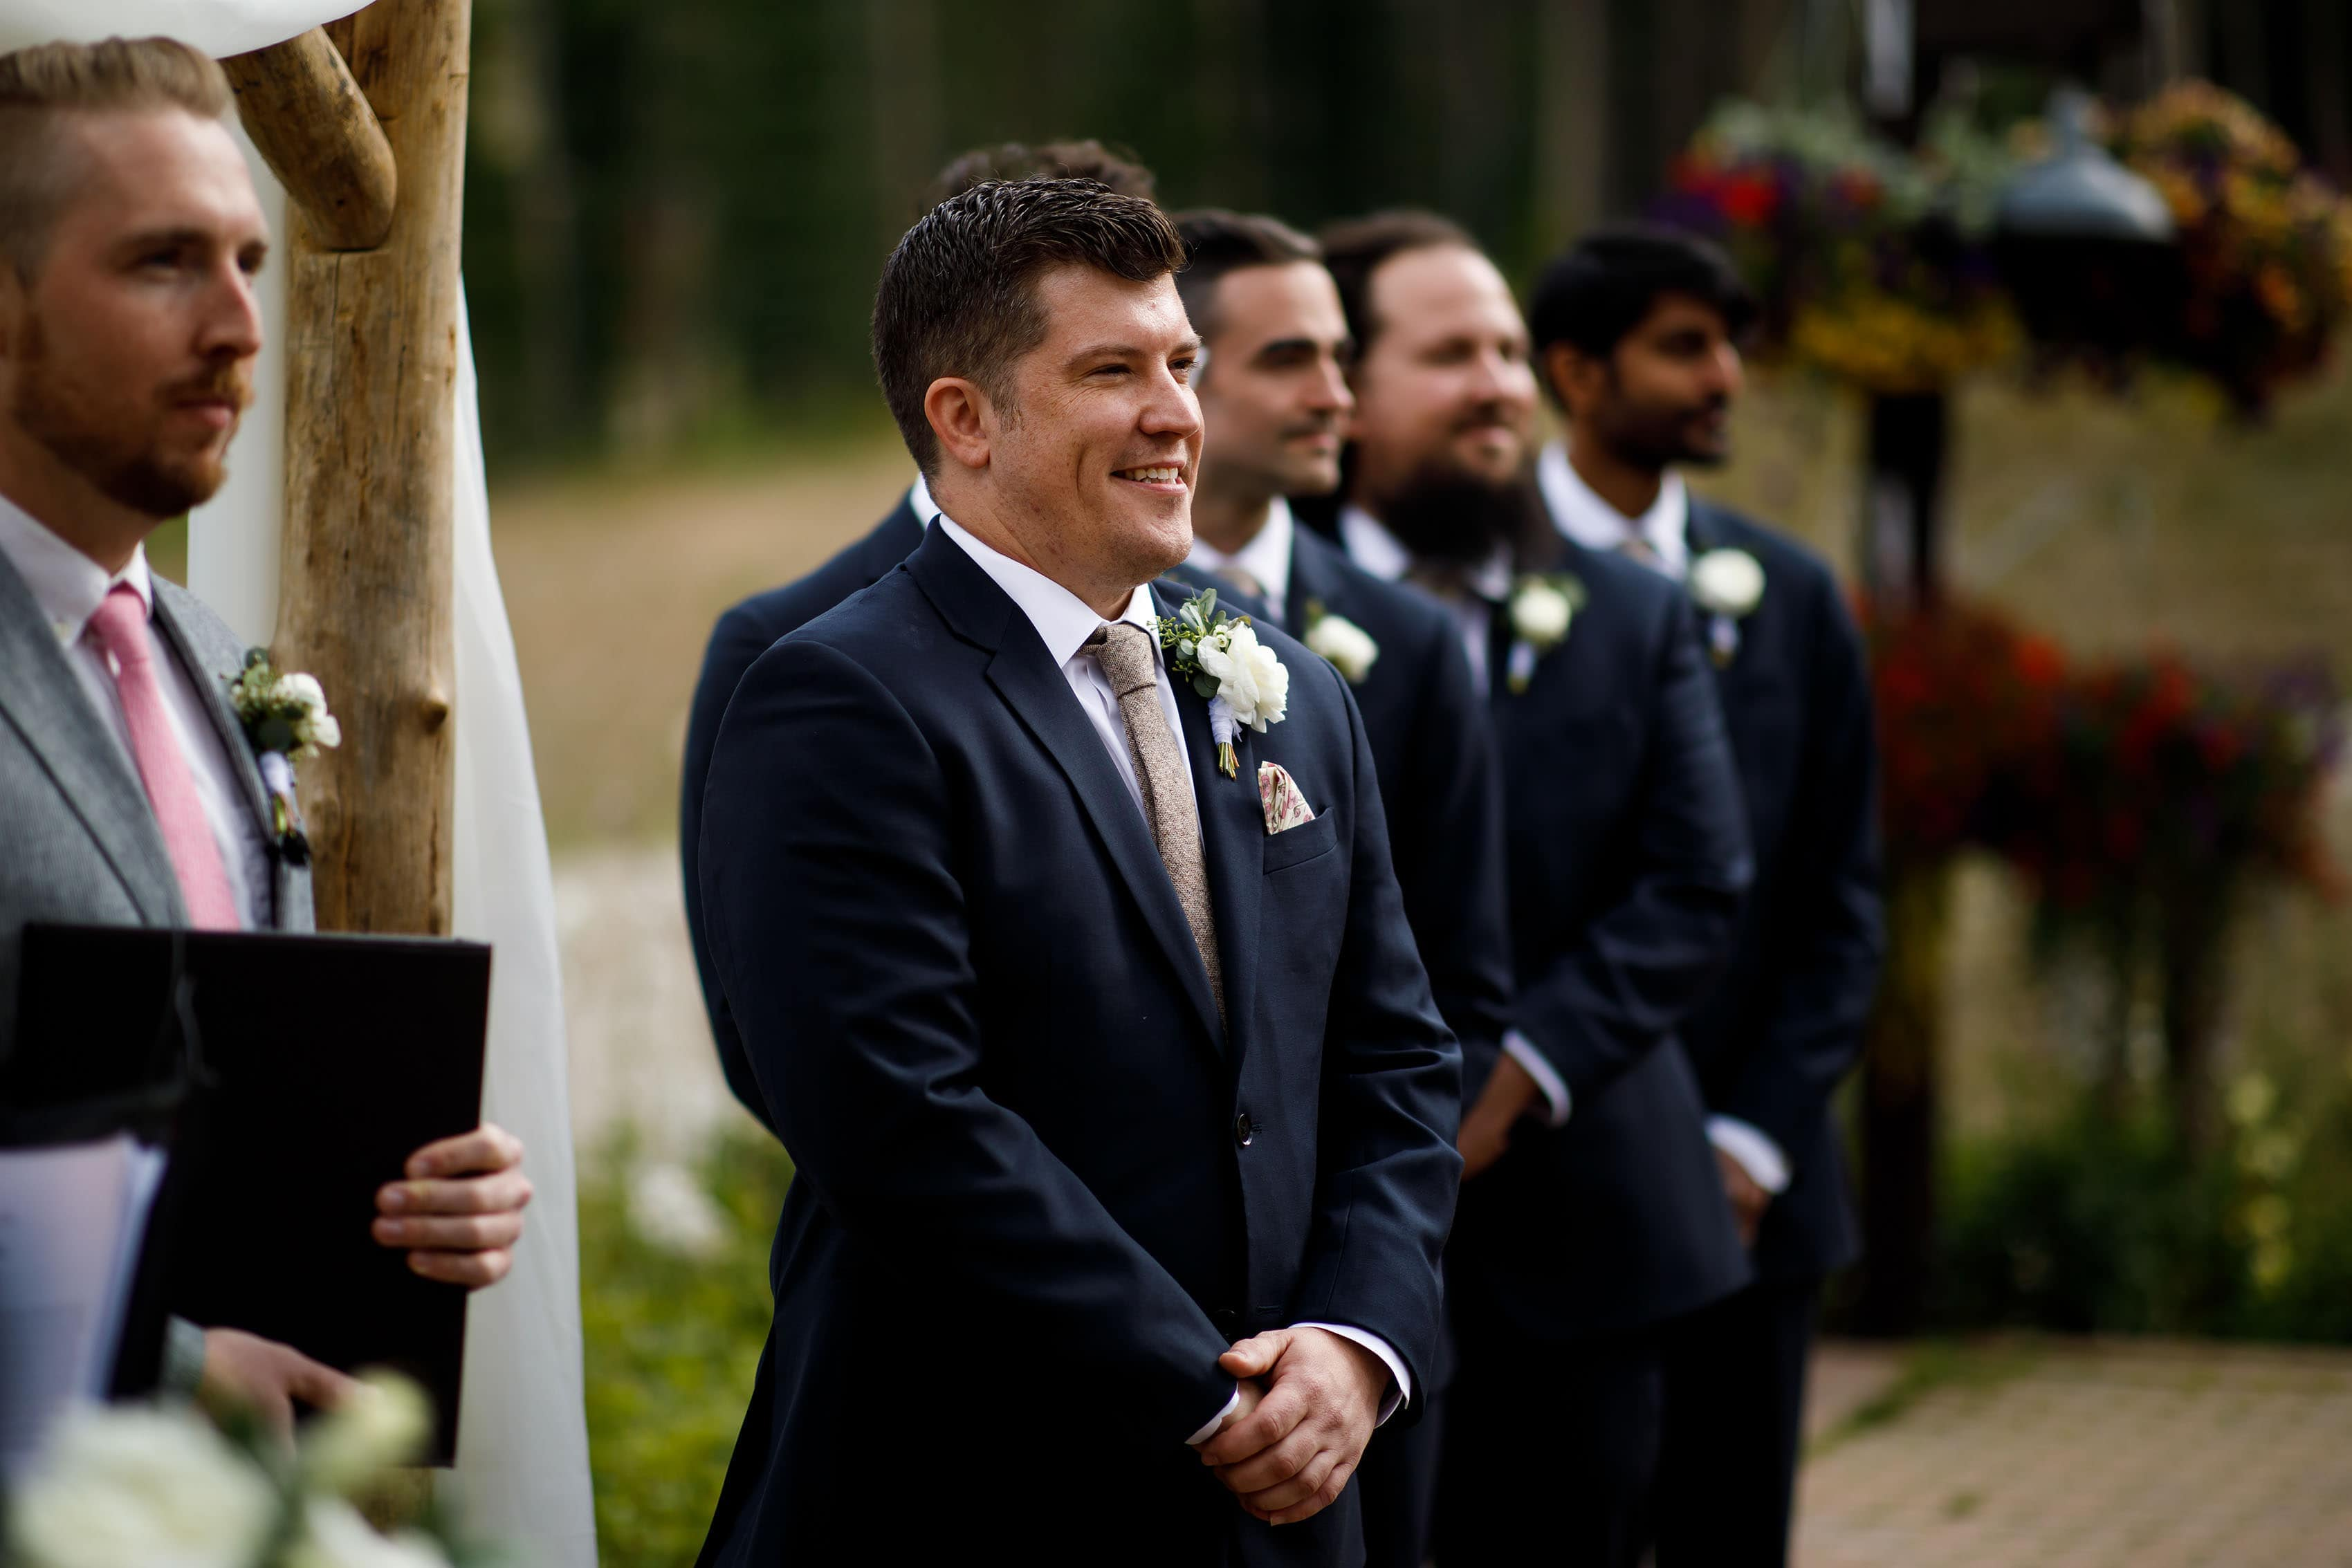 the groom stands during the ceremony